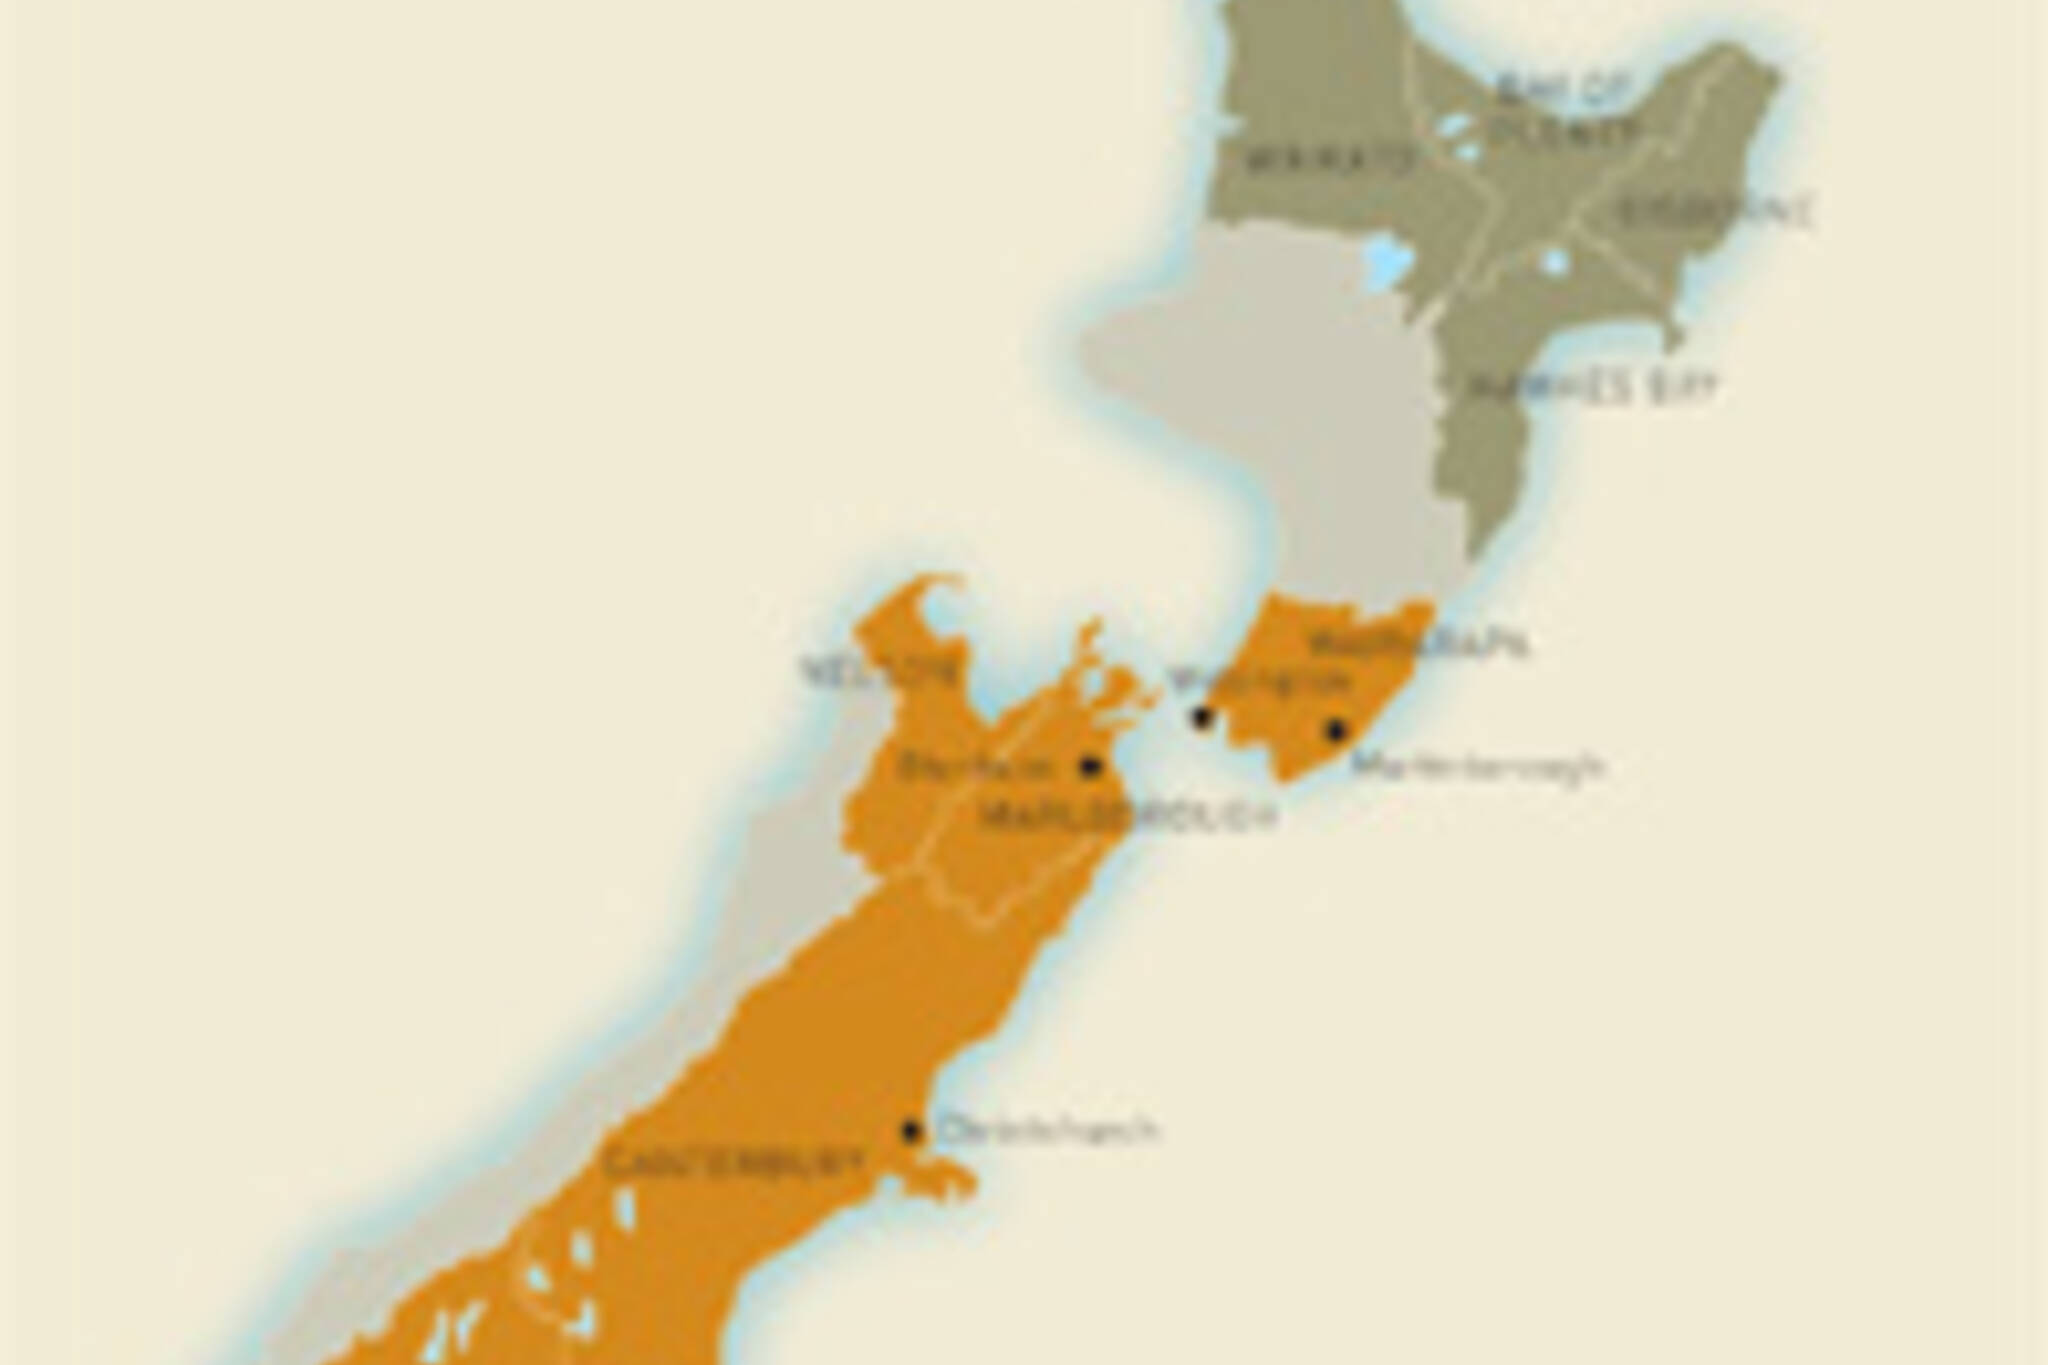 The wine regions of New Zealand.  Image from www.vintages.com